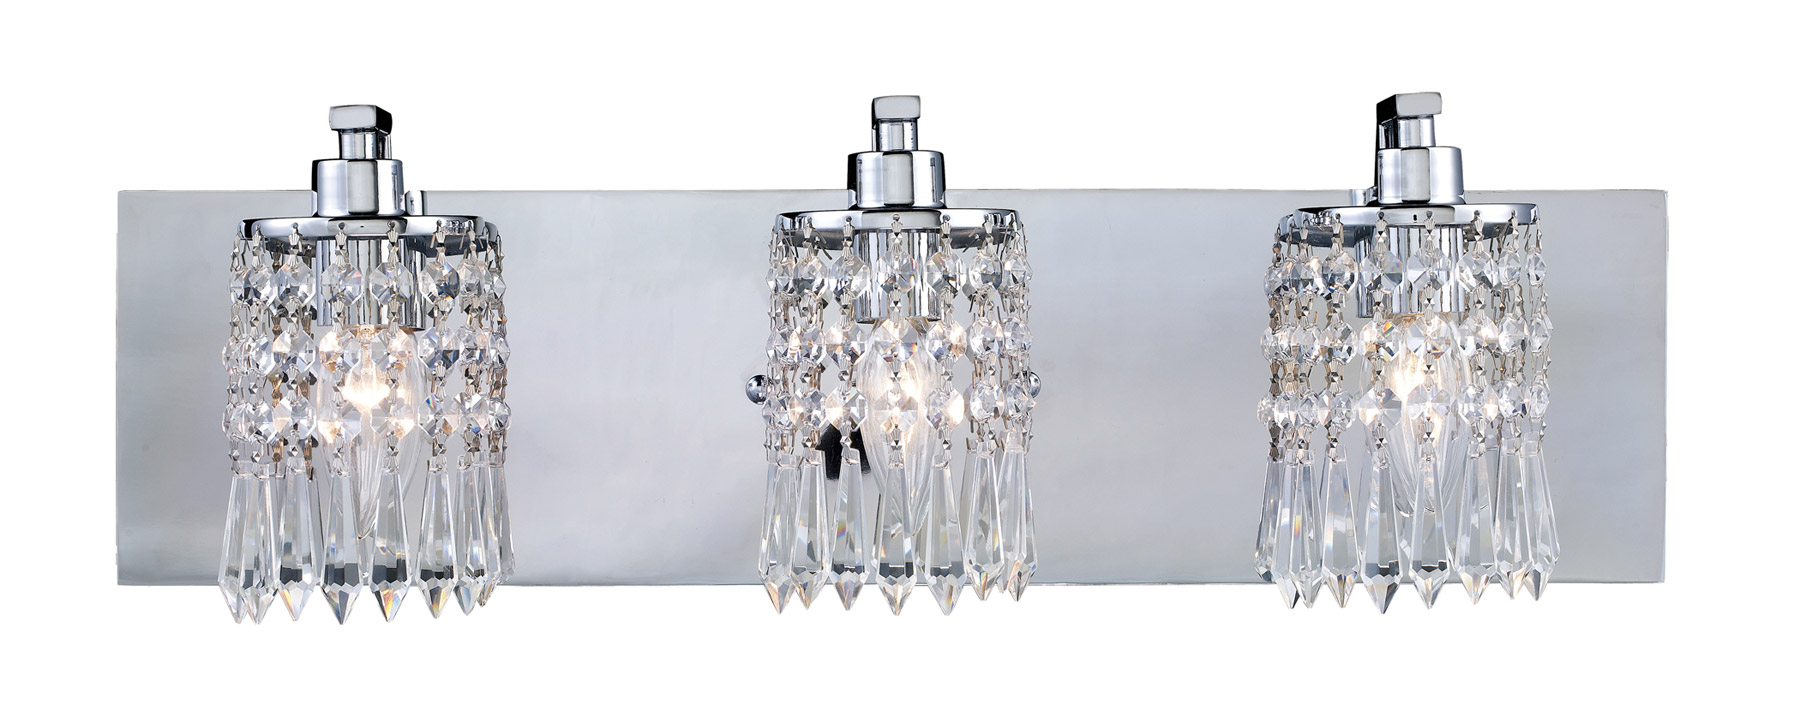 Lighting 11230 3 Crystal Optix Vanity Light. Bathroom Vanity Lighting Crystal Fixtures Interiordesignew  sc 1 st  Light Fixtures & Crystal Bathroom Vanity Light Fixtures - Light Fixtures azcodes.com